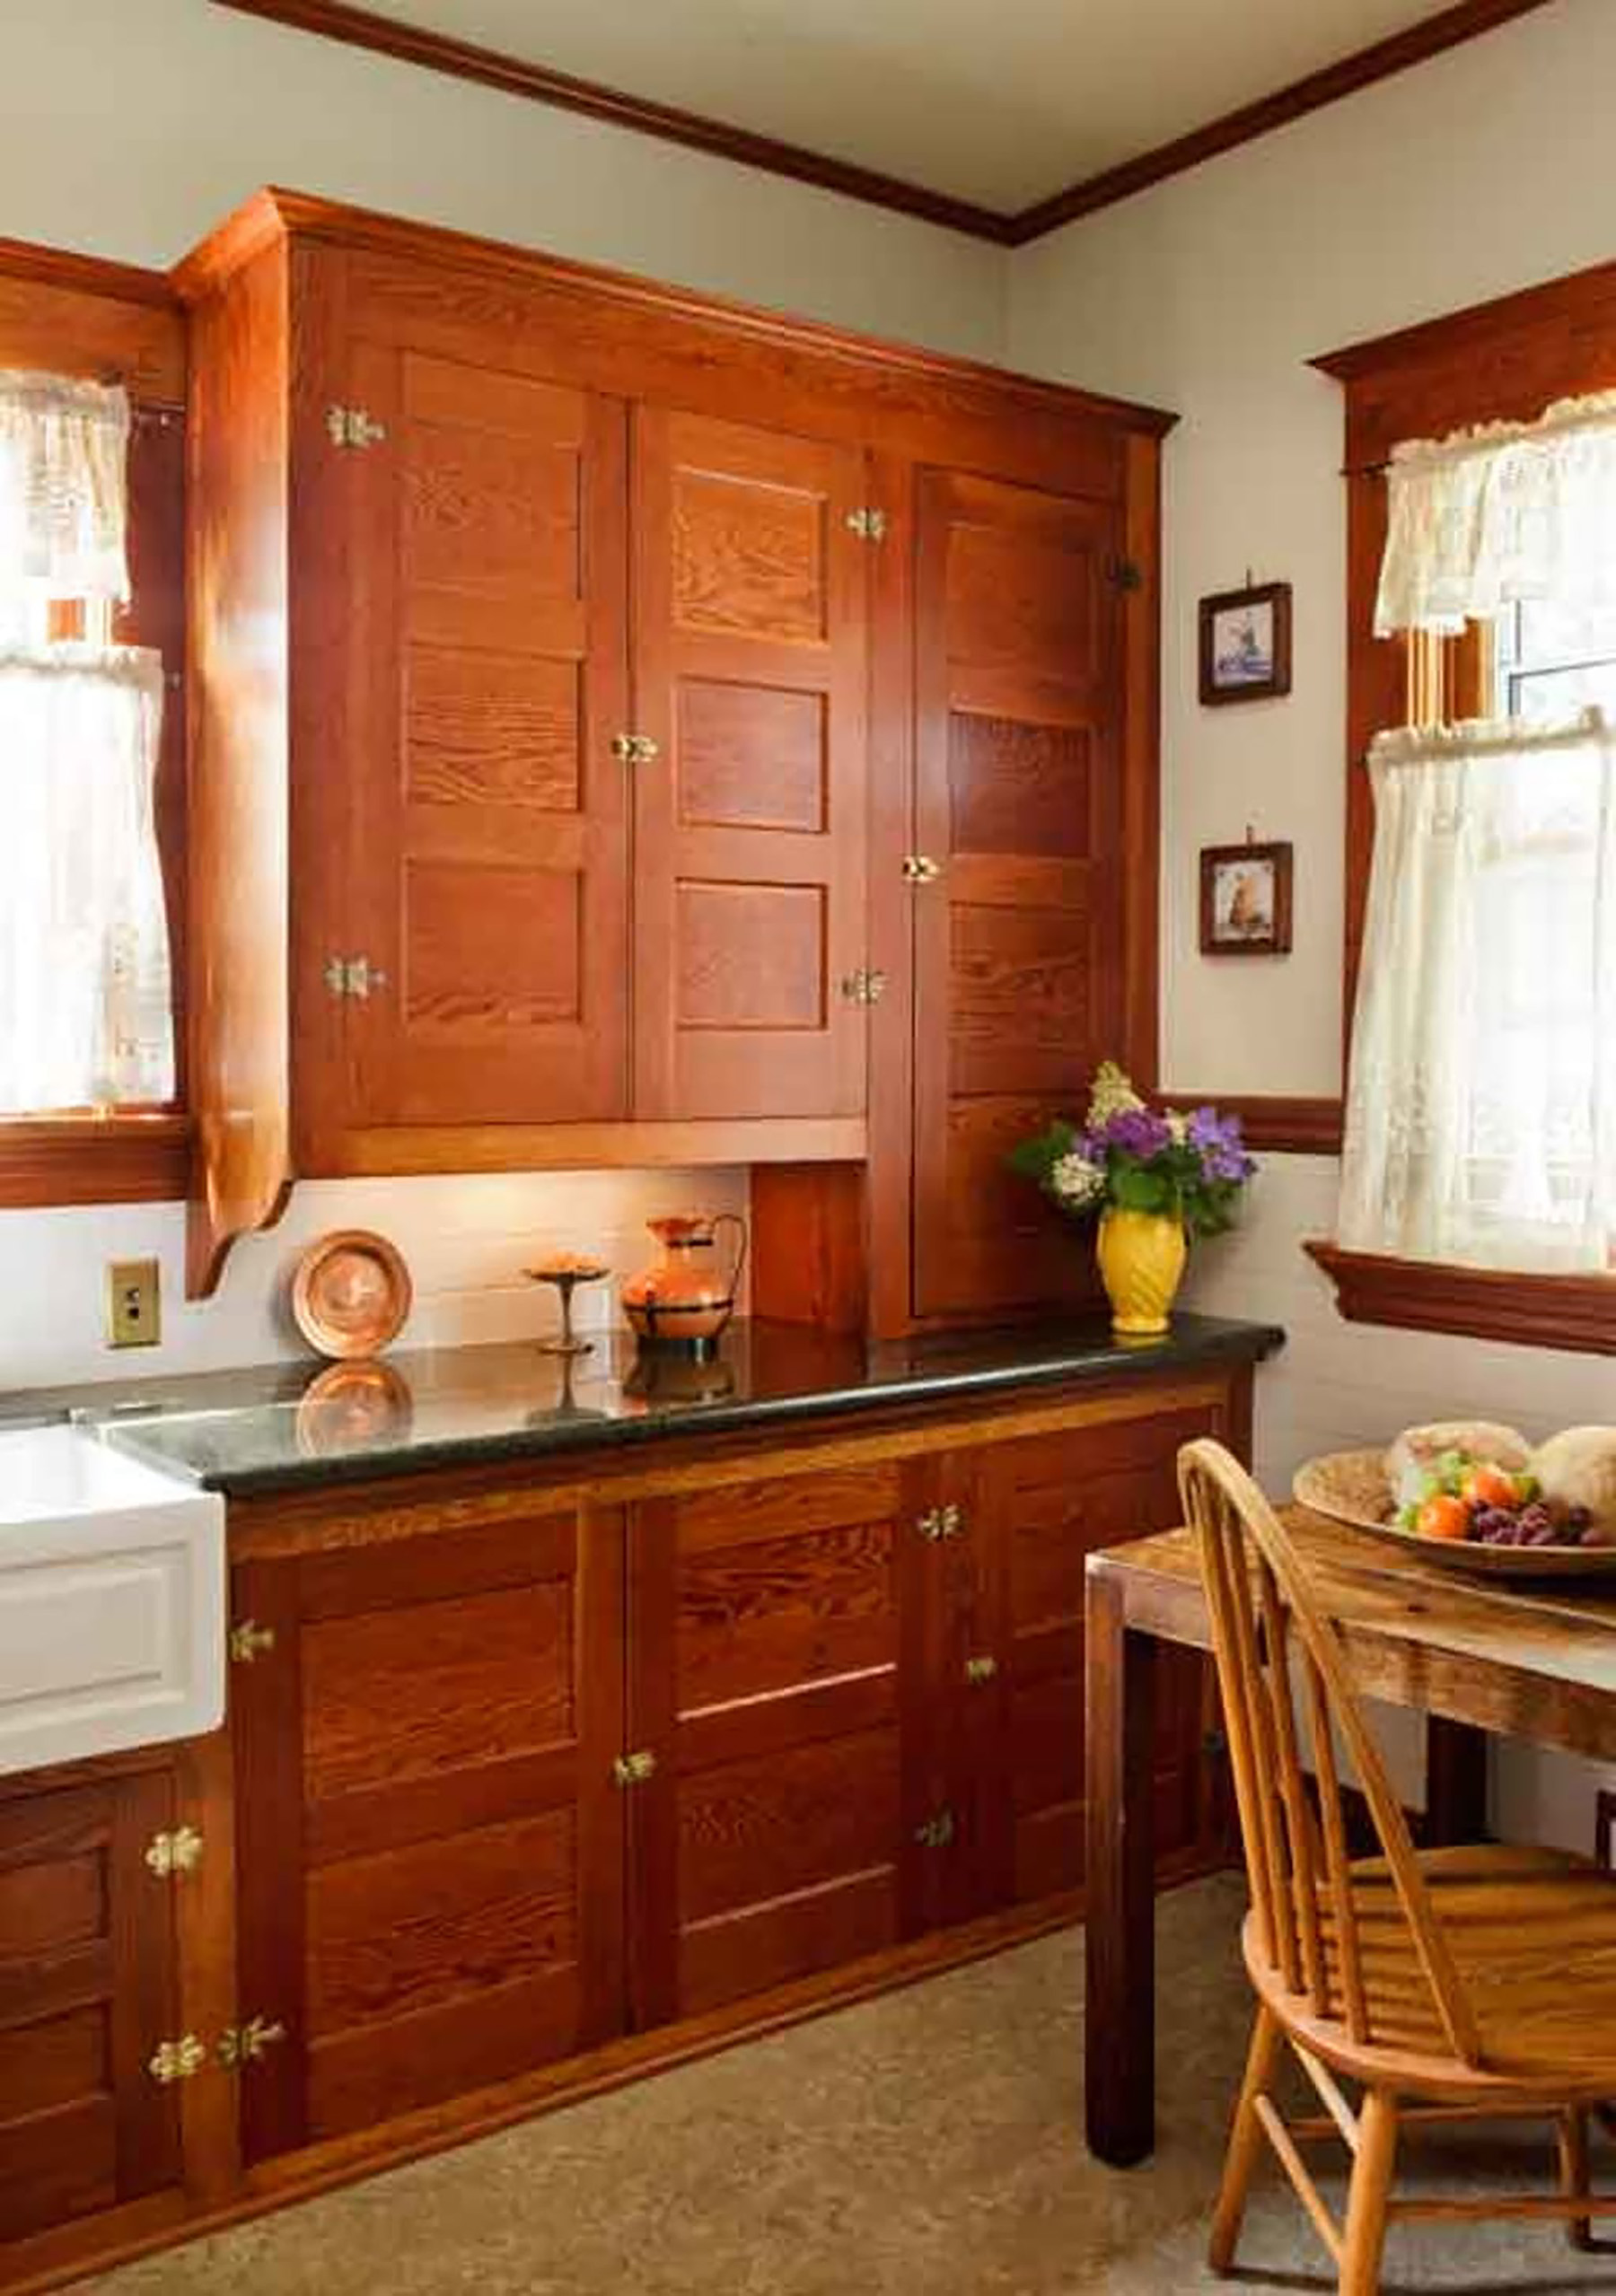 Cabinet details like brackets and exposed hinges look vintage.